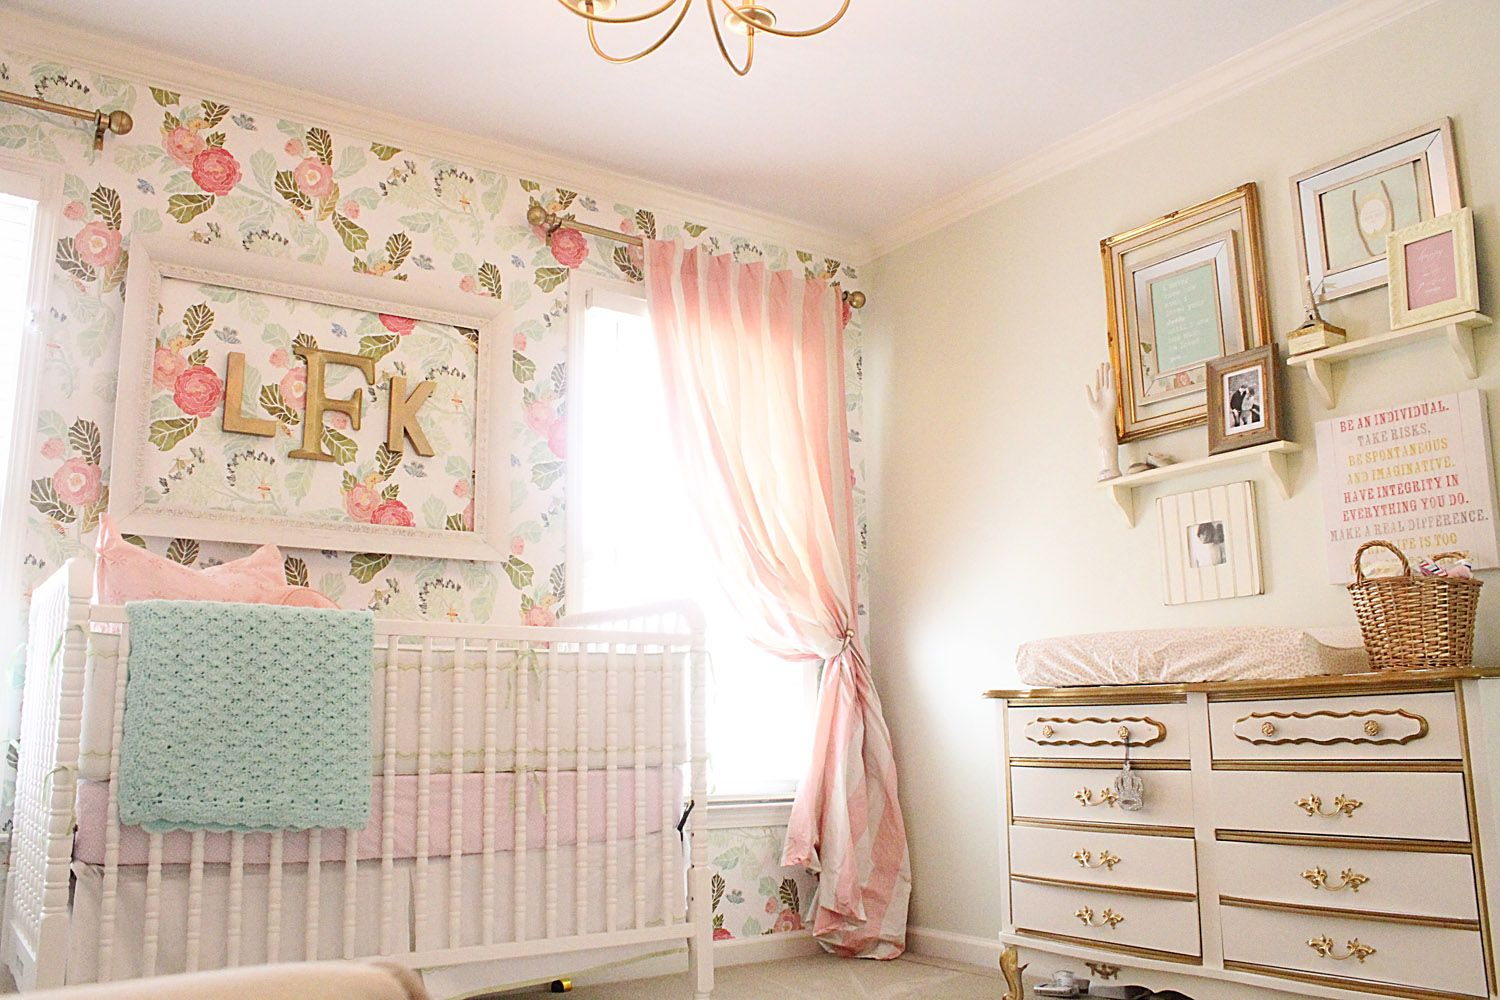 Floral Vintage Nursery with Flower Anthropologie Wallpaper